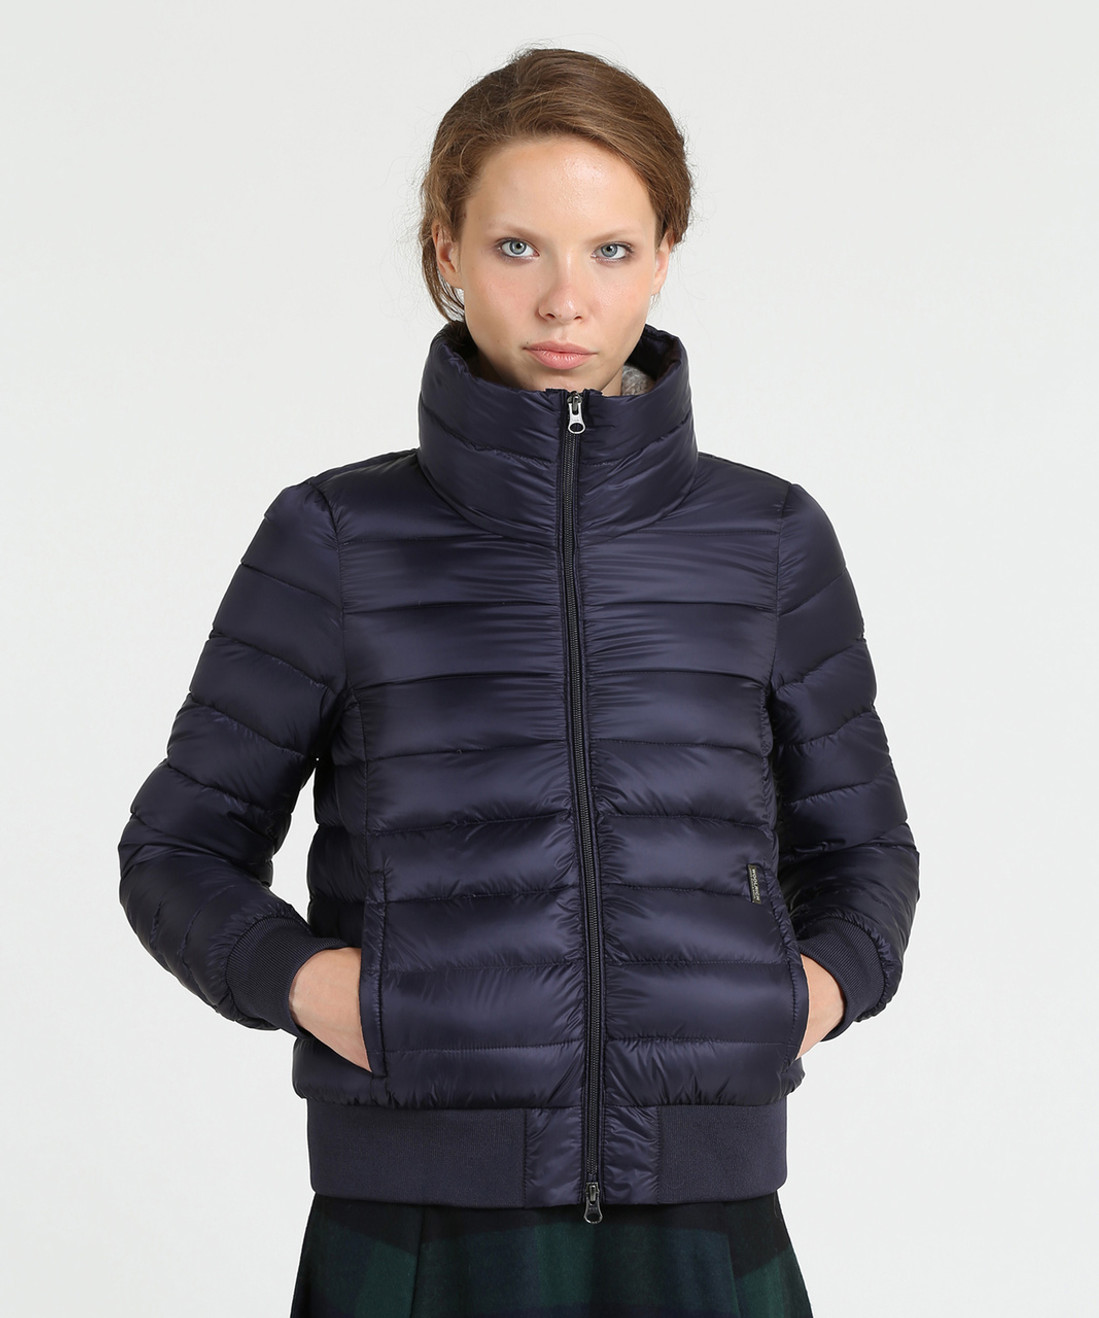 Women's 3 in 1 Grace Jacket - John Rich & Bros.